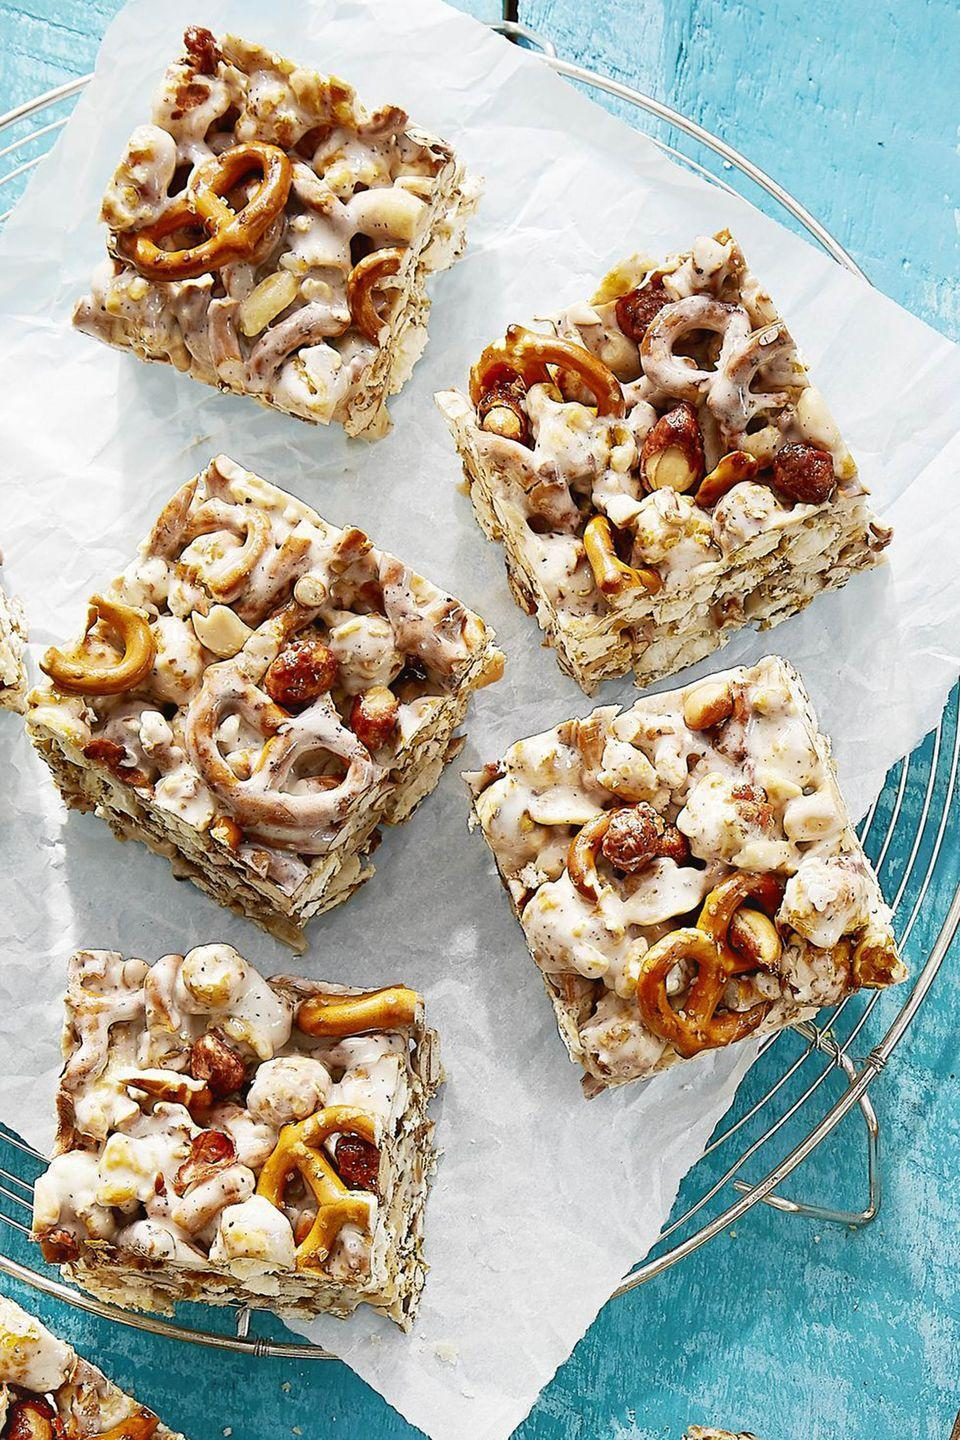 """<p>The favorite ballpark treat is blended with marshmallows, pretzels, and peanuts for a dessert you'll devour.</p><p><strong><a href=""""https://www.countryliving.com/food-drinks/recipes/a43071/cracker-jack-pretzel-treats-recipe/"""" rel=""""nofollow noopener"""" target=""""_blank"""" data-ylk=""""slk:Get the recipe"""" class=""""link rapid-noclick-resp"""">Get the recipe</a>.</strong></p><p><a class=""""link rapid-noclick-resp"""" href=""""https://www.amazon.com/Durable-Multi-Purpose-Stainless-Steamer-Steaming/dp/B010LFOG76?tag=syn-yahoo-20&ascsubtag=%5Bartid%7C10050.g.3290%5Bsrc%7Cyahoo-us"""" rel=""""nofollow noopener"""" target=""""_blank"""" data-ylk=""""slk:SHOP FOOD STEAMER"""">SHOP FOOD STEAMER</a> </p>"""